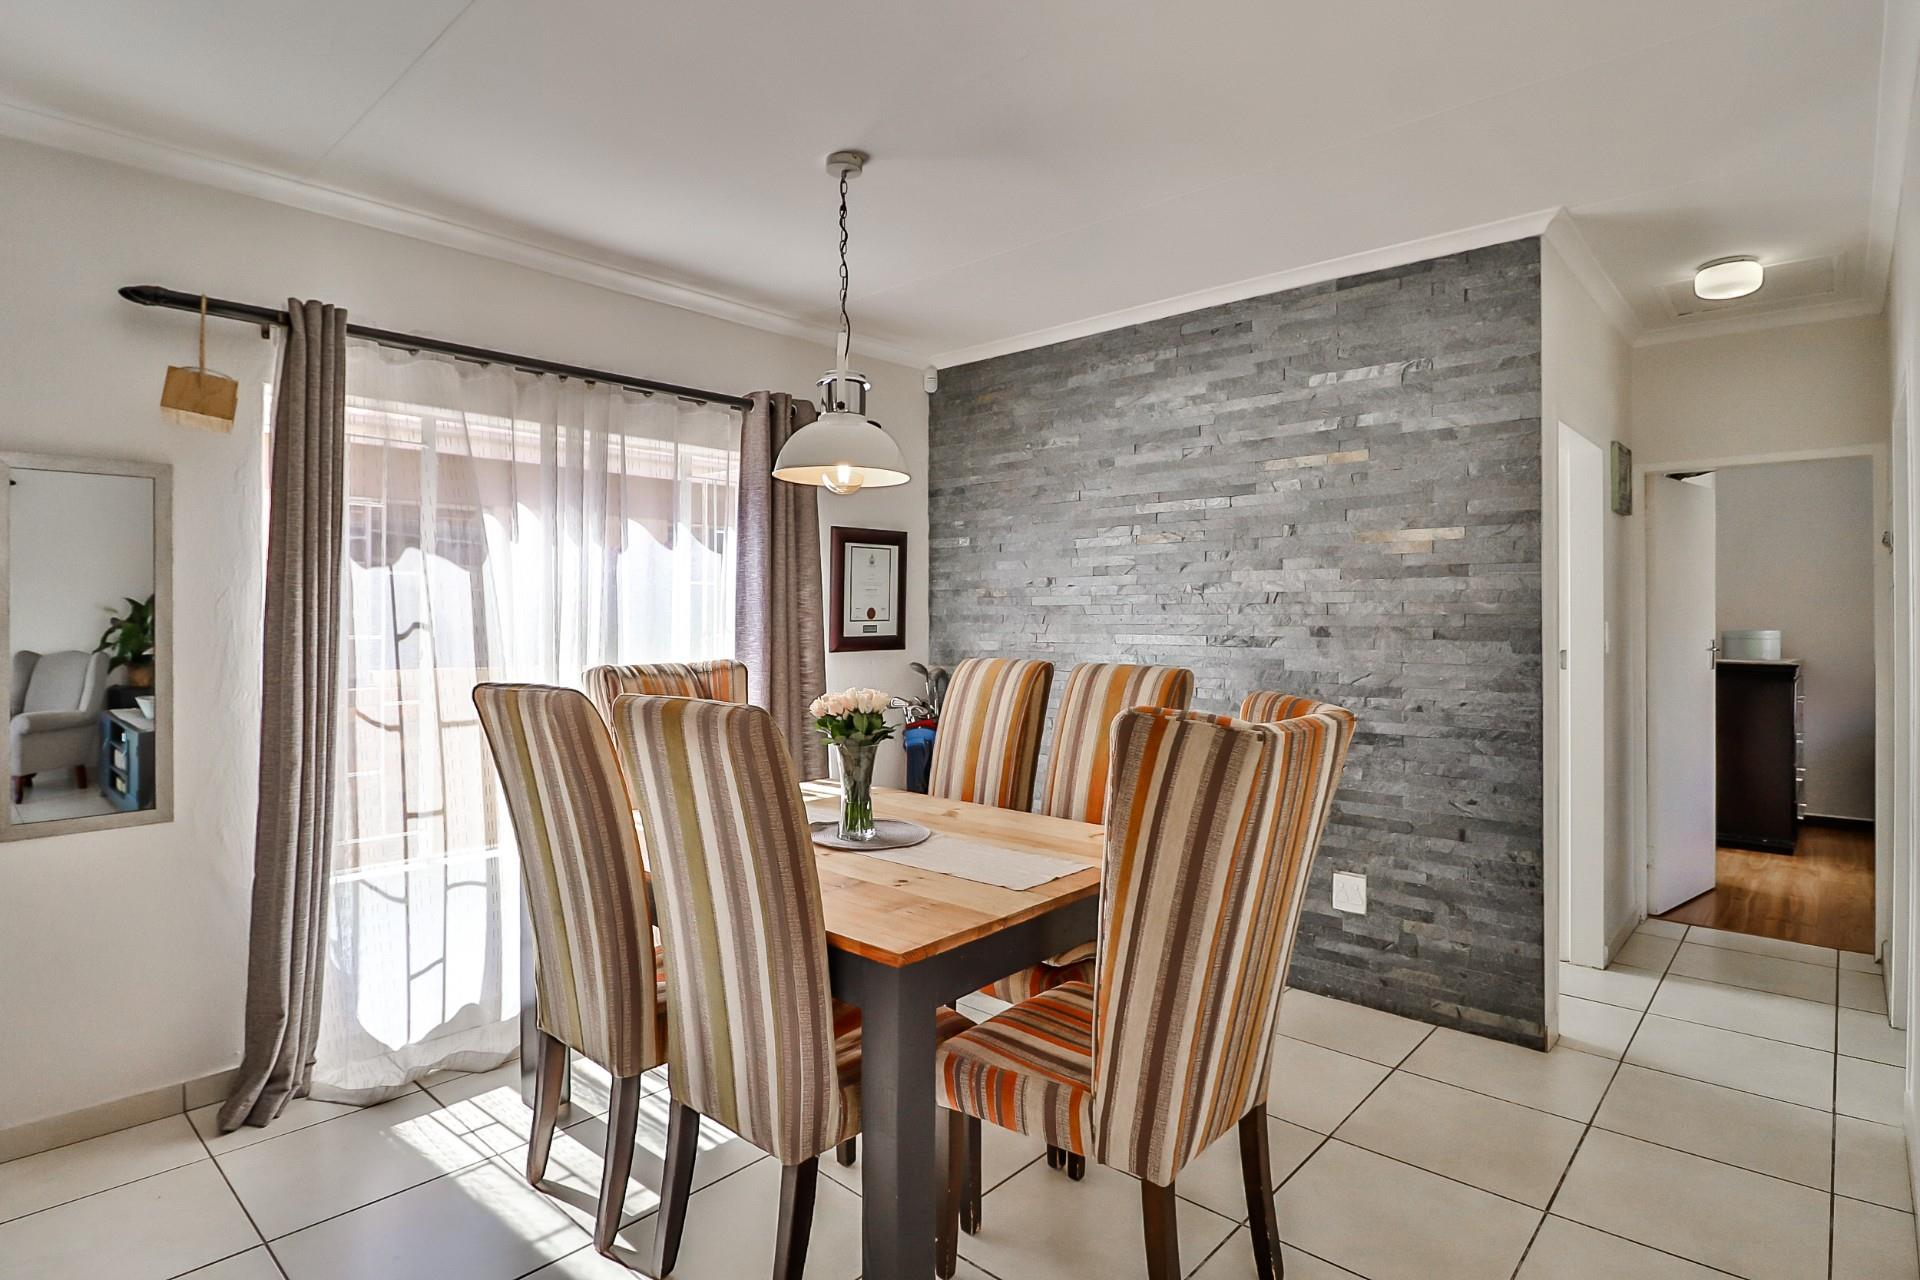 2 Bedroom House For Sale in North Riding